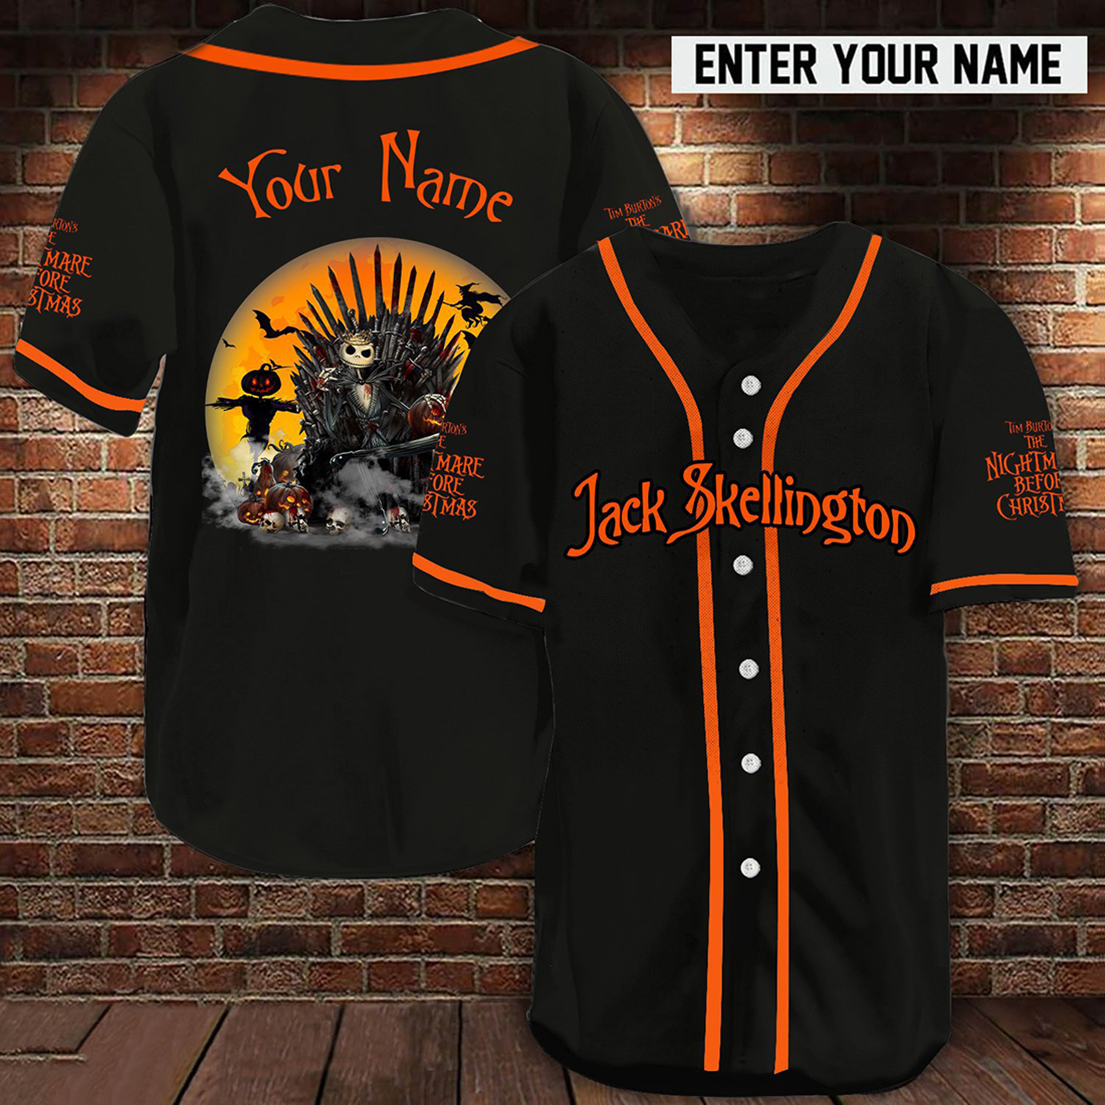 Personalized name Jack Skellington Game Of Thrones baseball jersey shirt - Picture 1